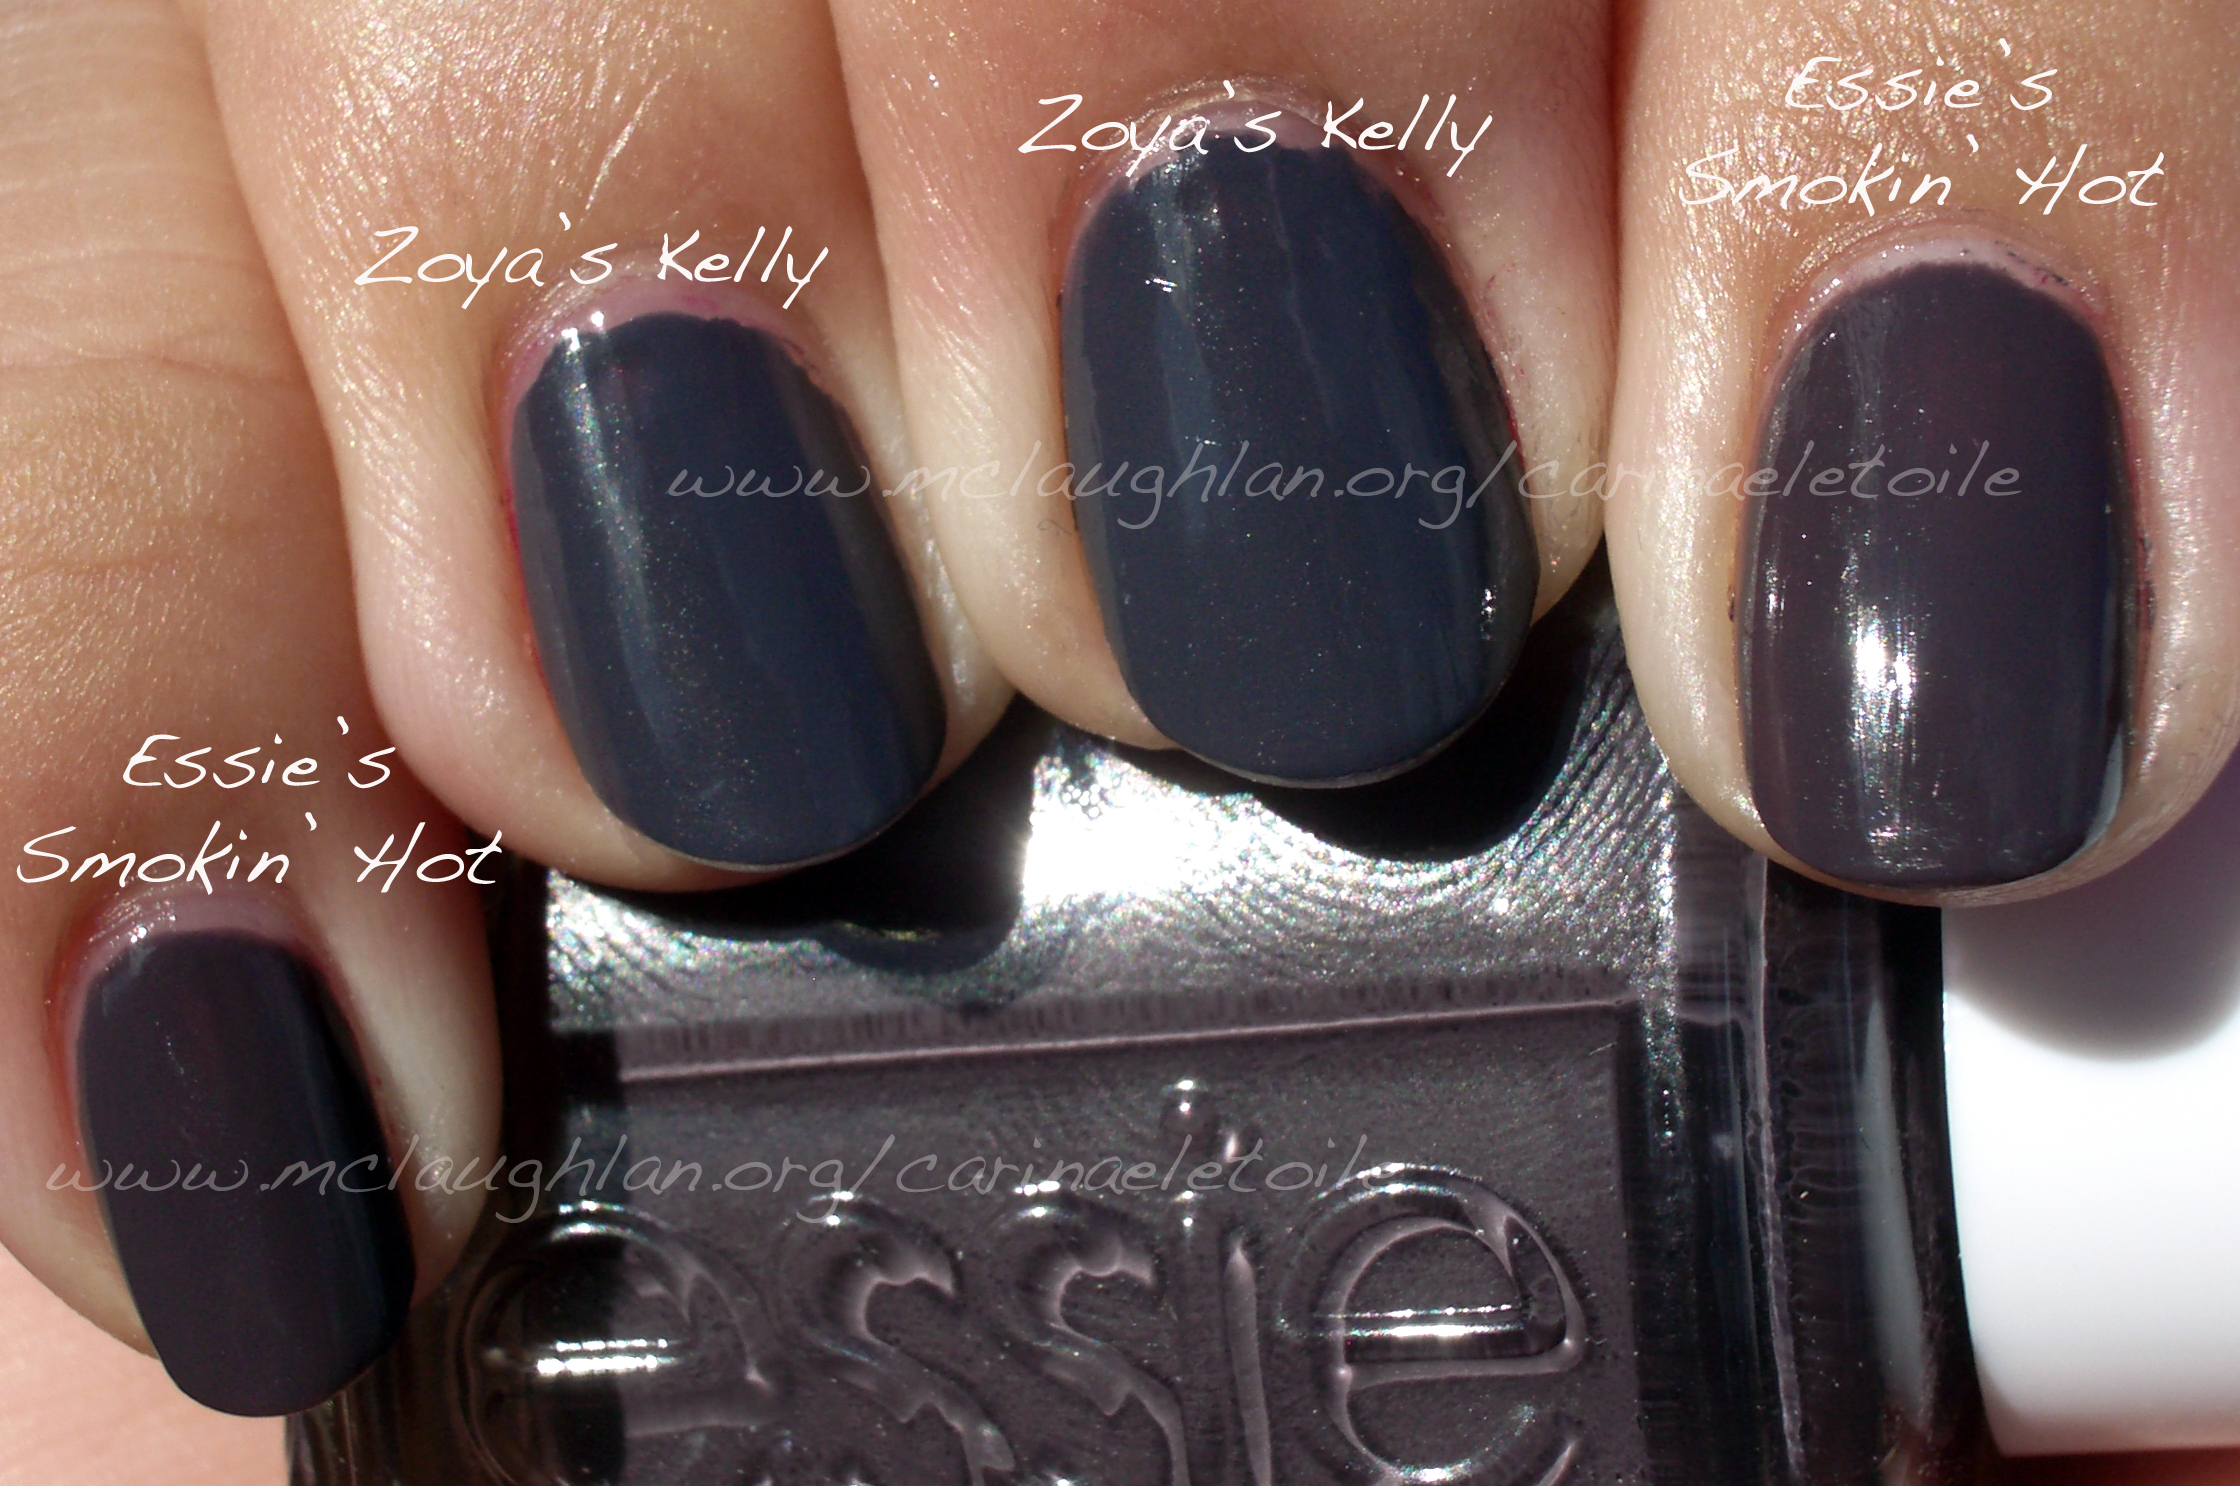 Essie Smokin Hot Vs Zoya Kelly Carinae L Etoile S Polish Stash